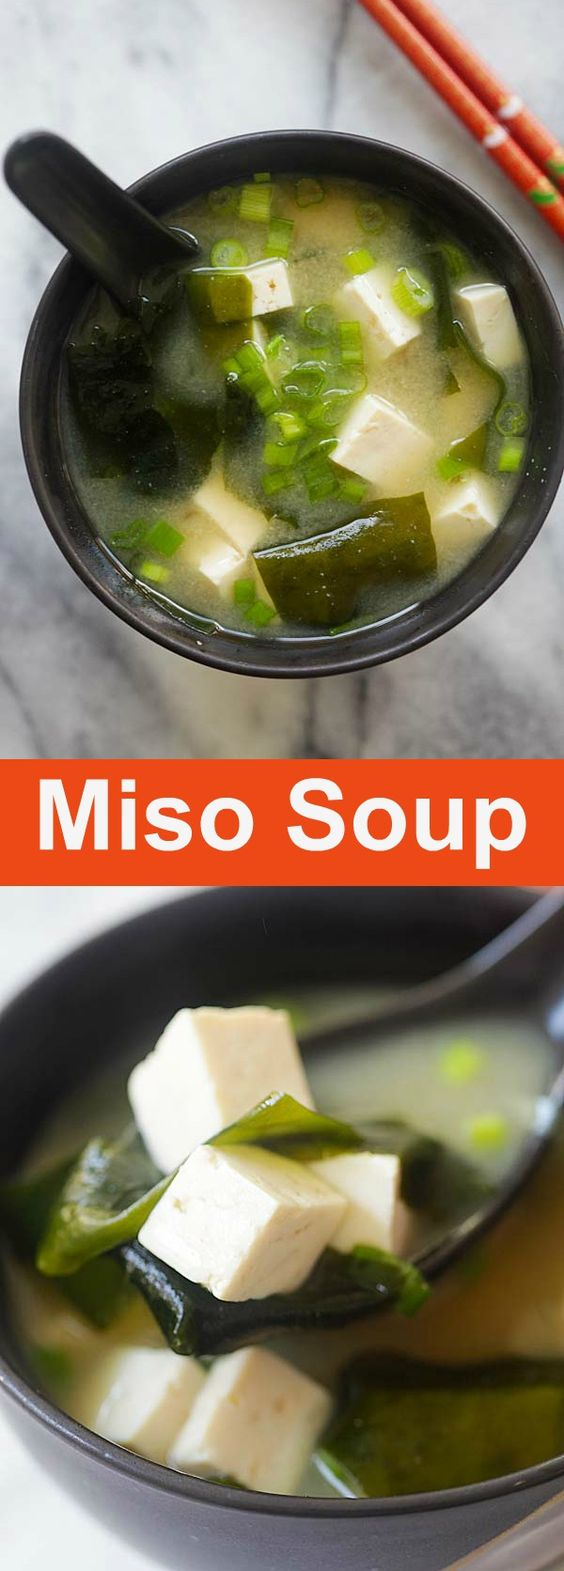 Miso Soup - Japanese soup made with healthy miso paste, tofu, seaweed and dashi broth. This homemade miso soup recipe is authentic, easy and tastes better than restaurants | rasamalaysia.com